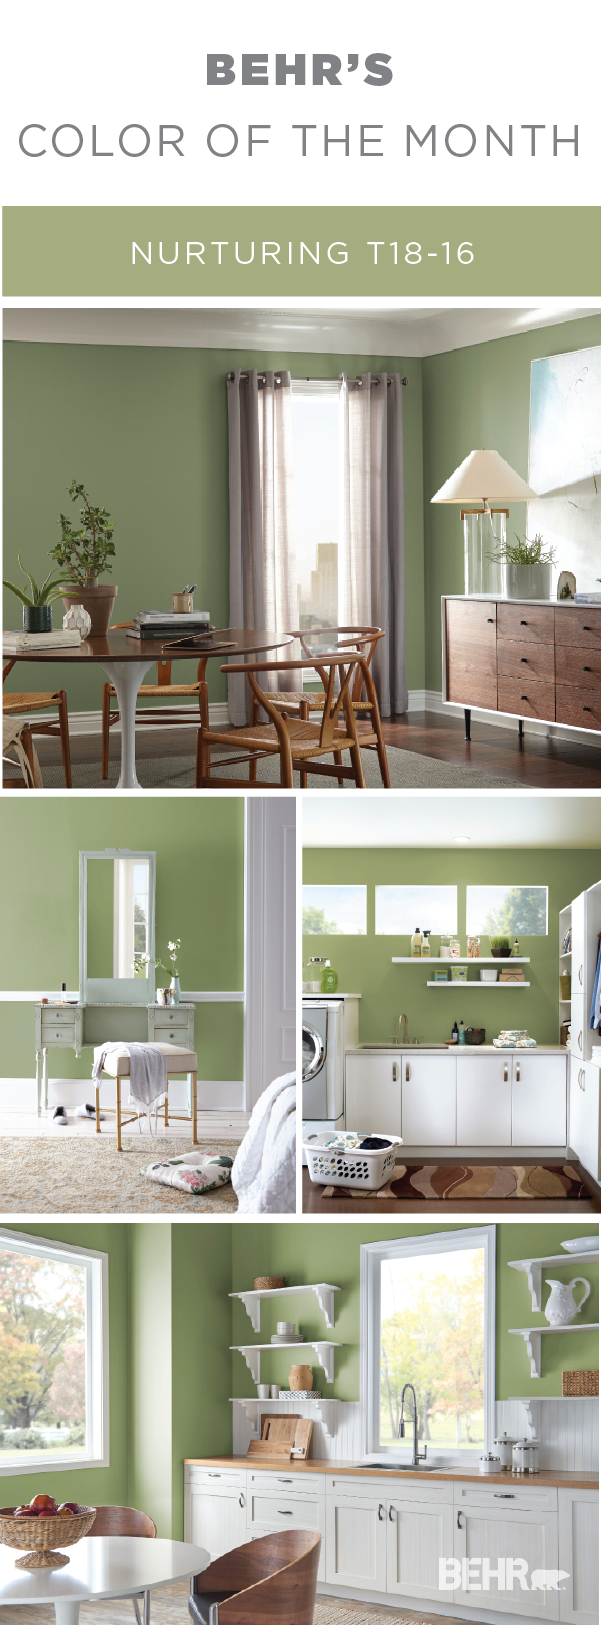 color of the month nurturing paint colors for home on behr paint colors interior id=59655